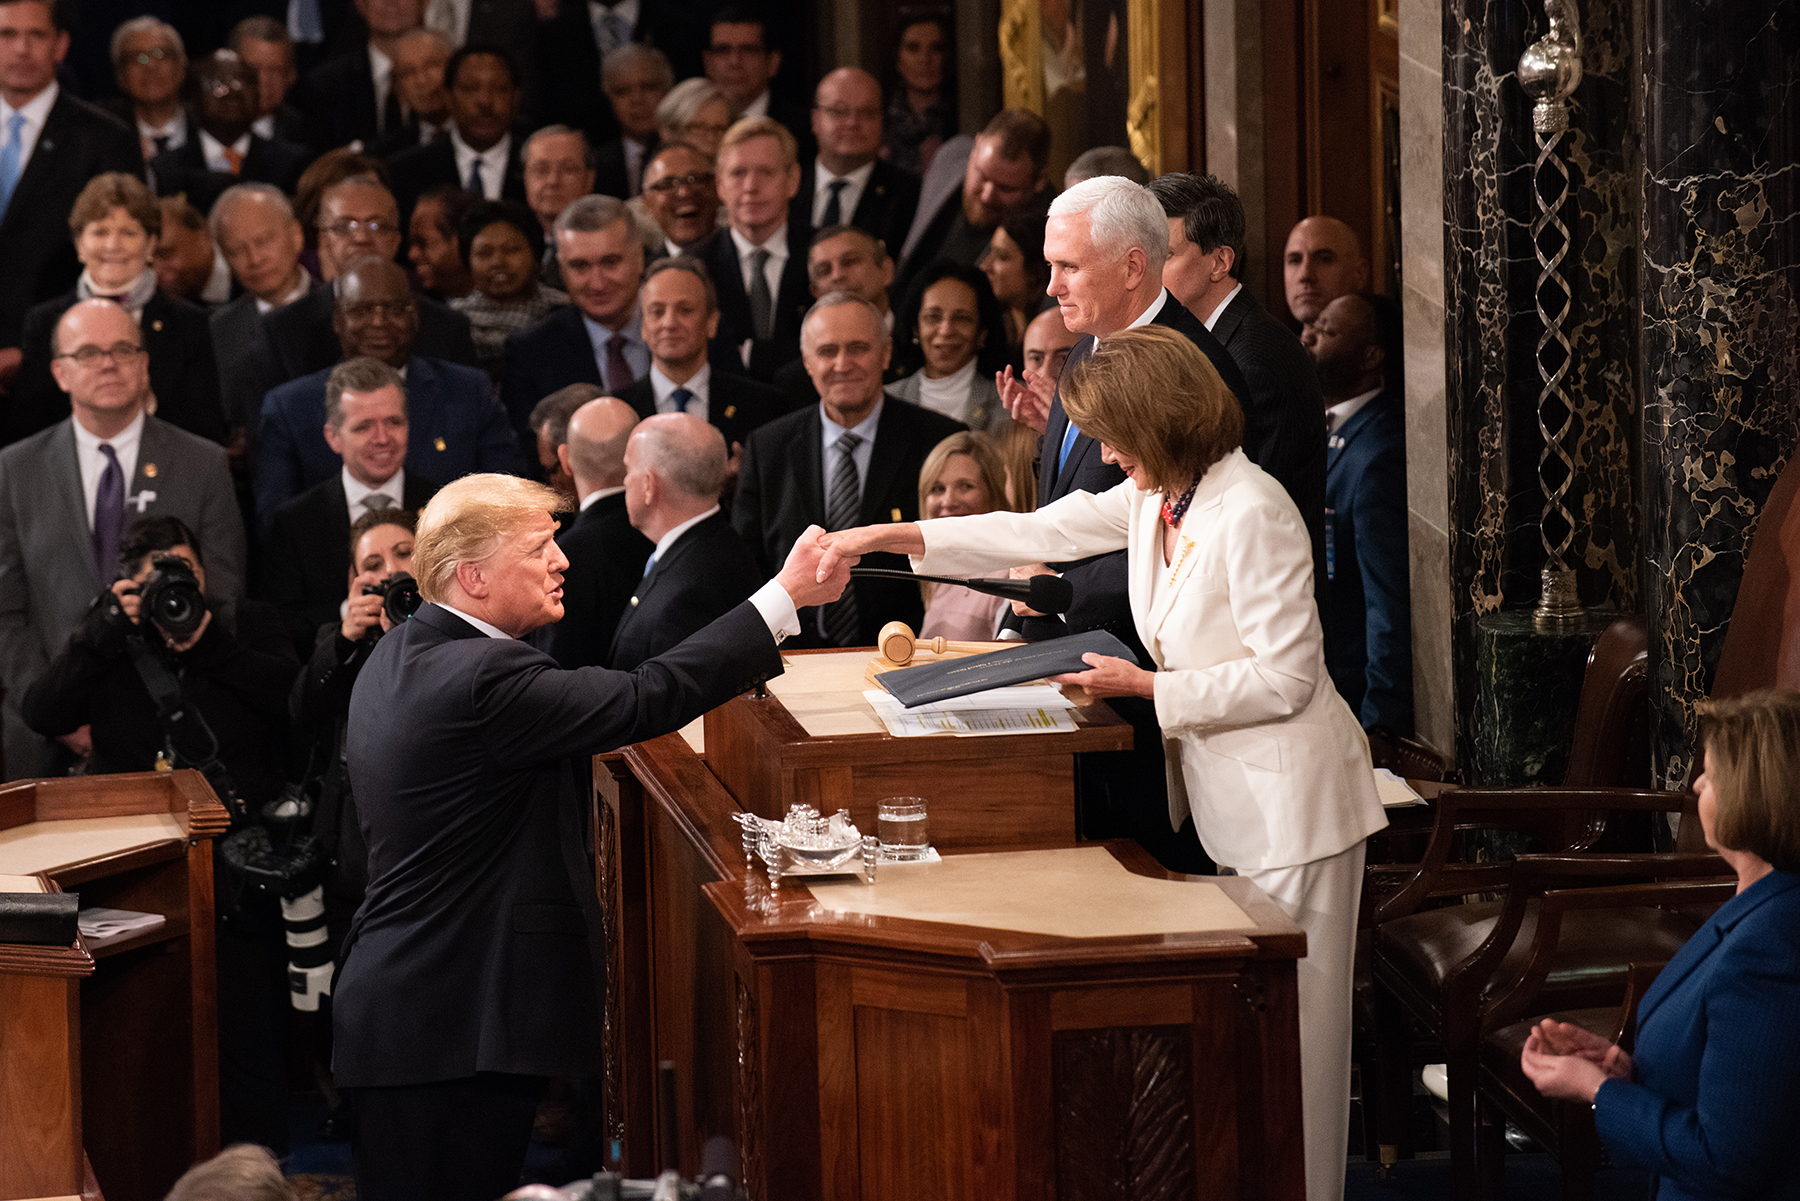 President Donald Trump shakes hands with U.S. House of Representatives Speaker Nancy Pelosi